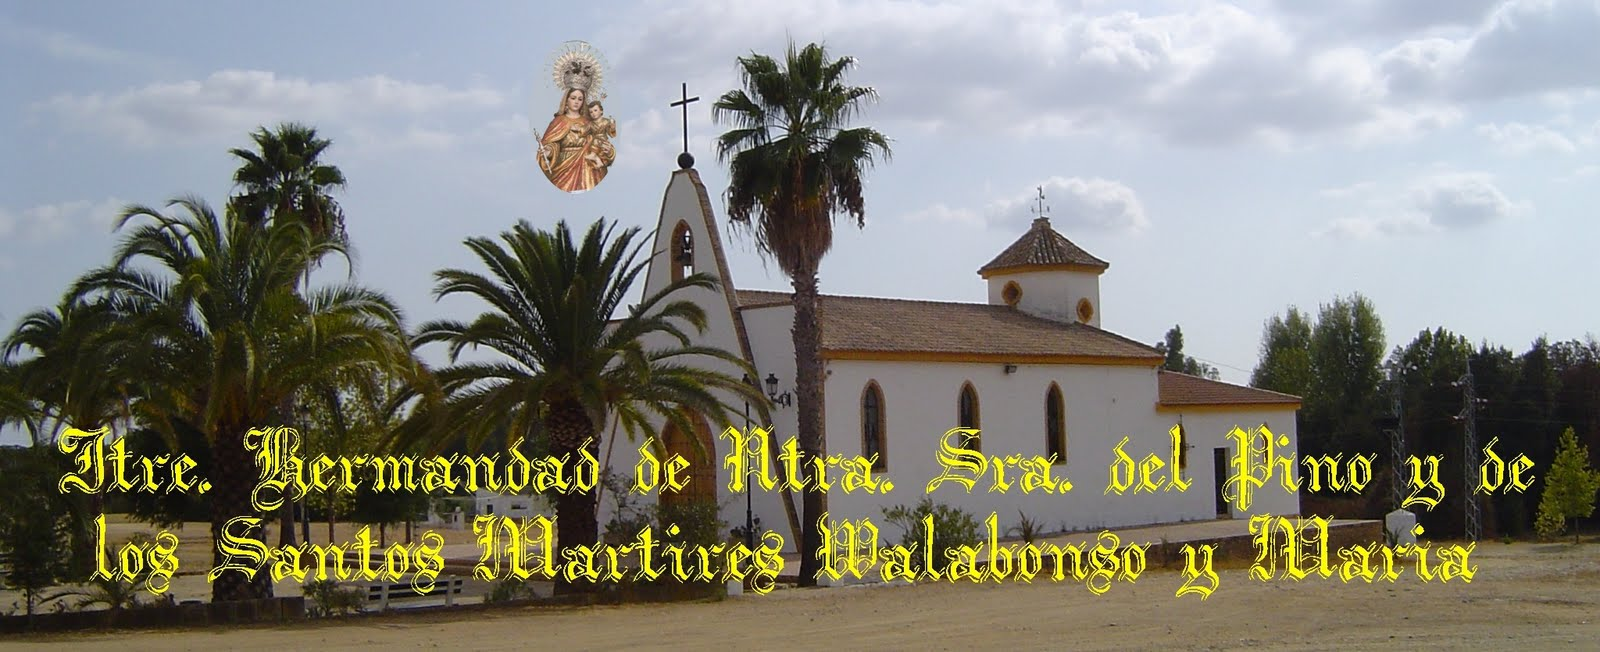 Ilustrsima Hermandad de Nuestra Seora del Pino y los Santos Mrtires Walabonso y Mara